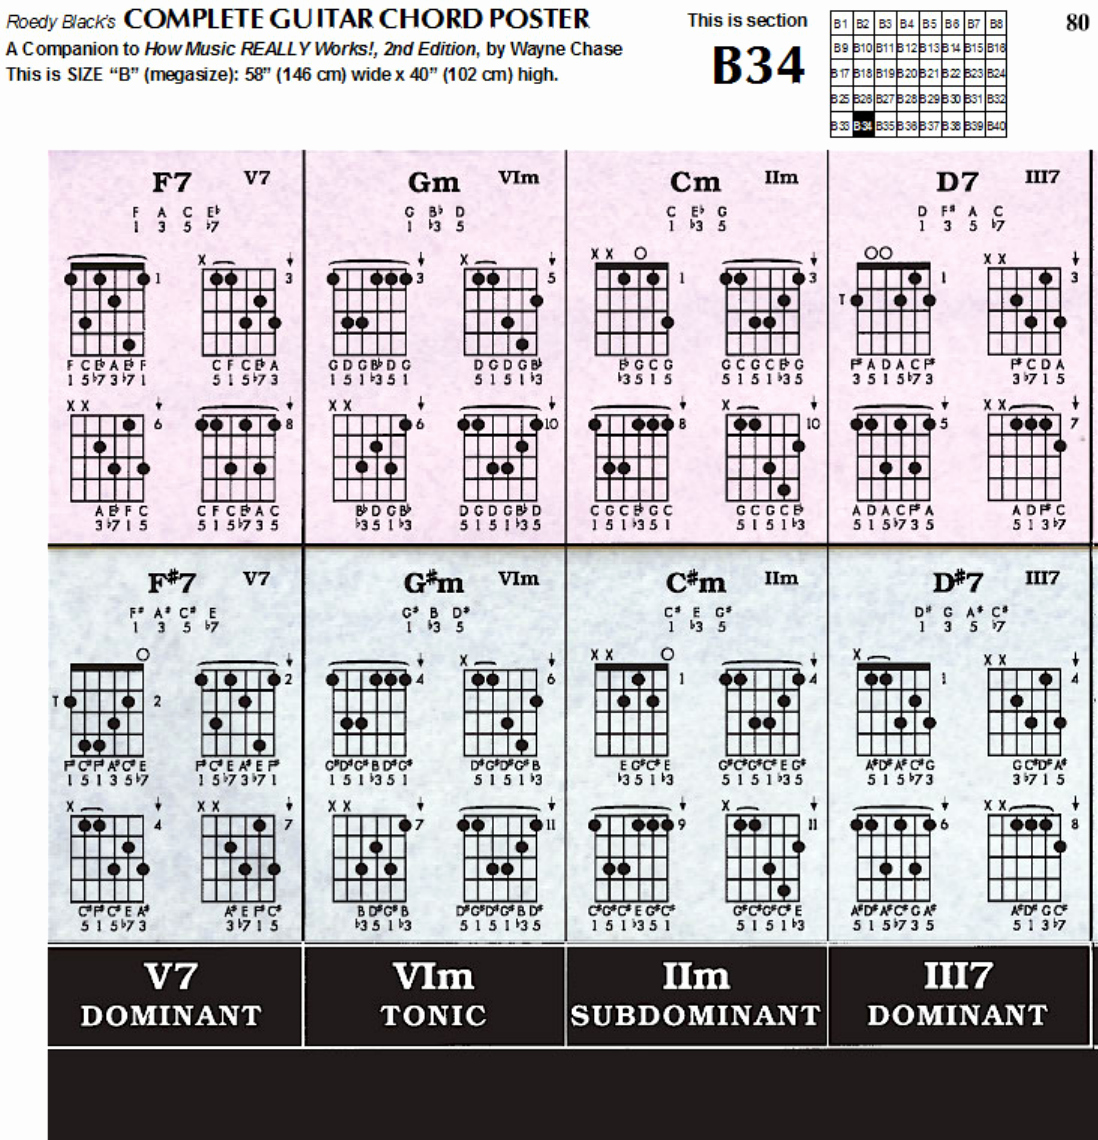 Complete Guitar Chords Charts Unique Download Plete Guitar Chord Chart Template for Free